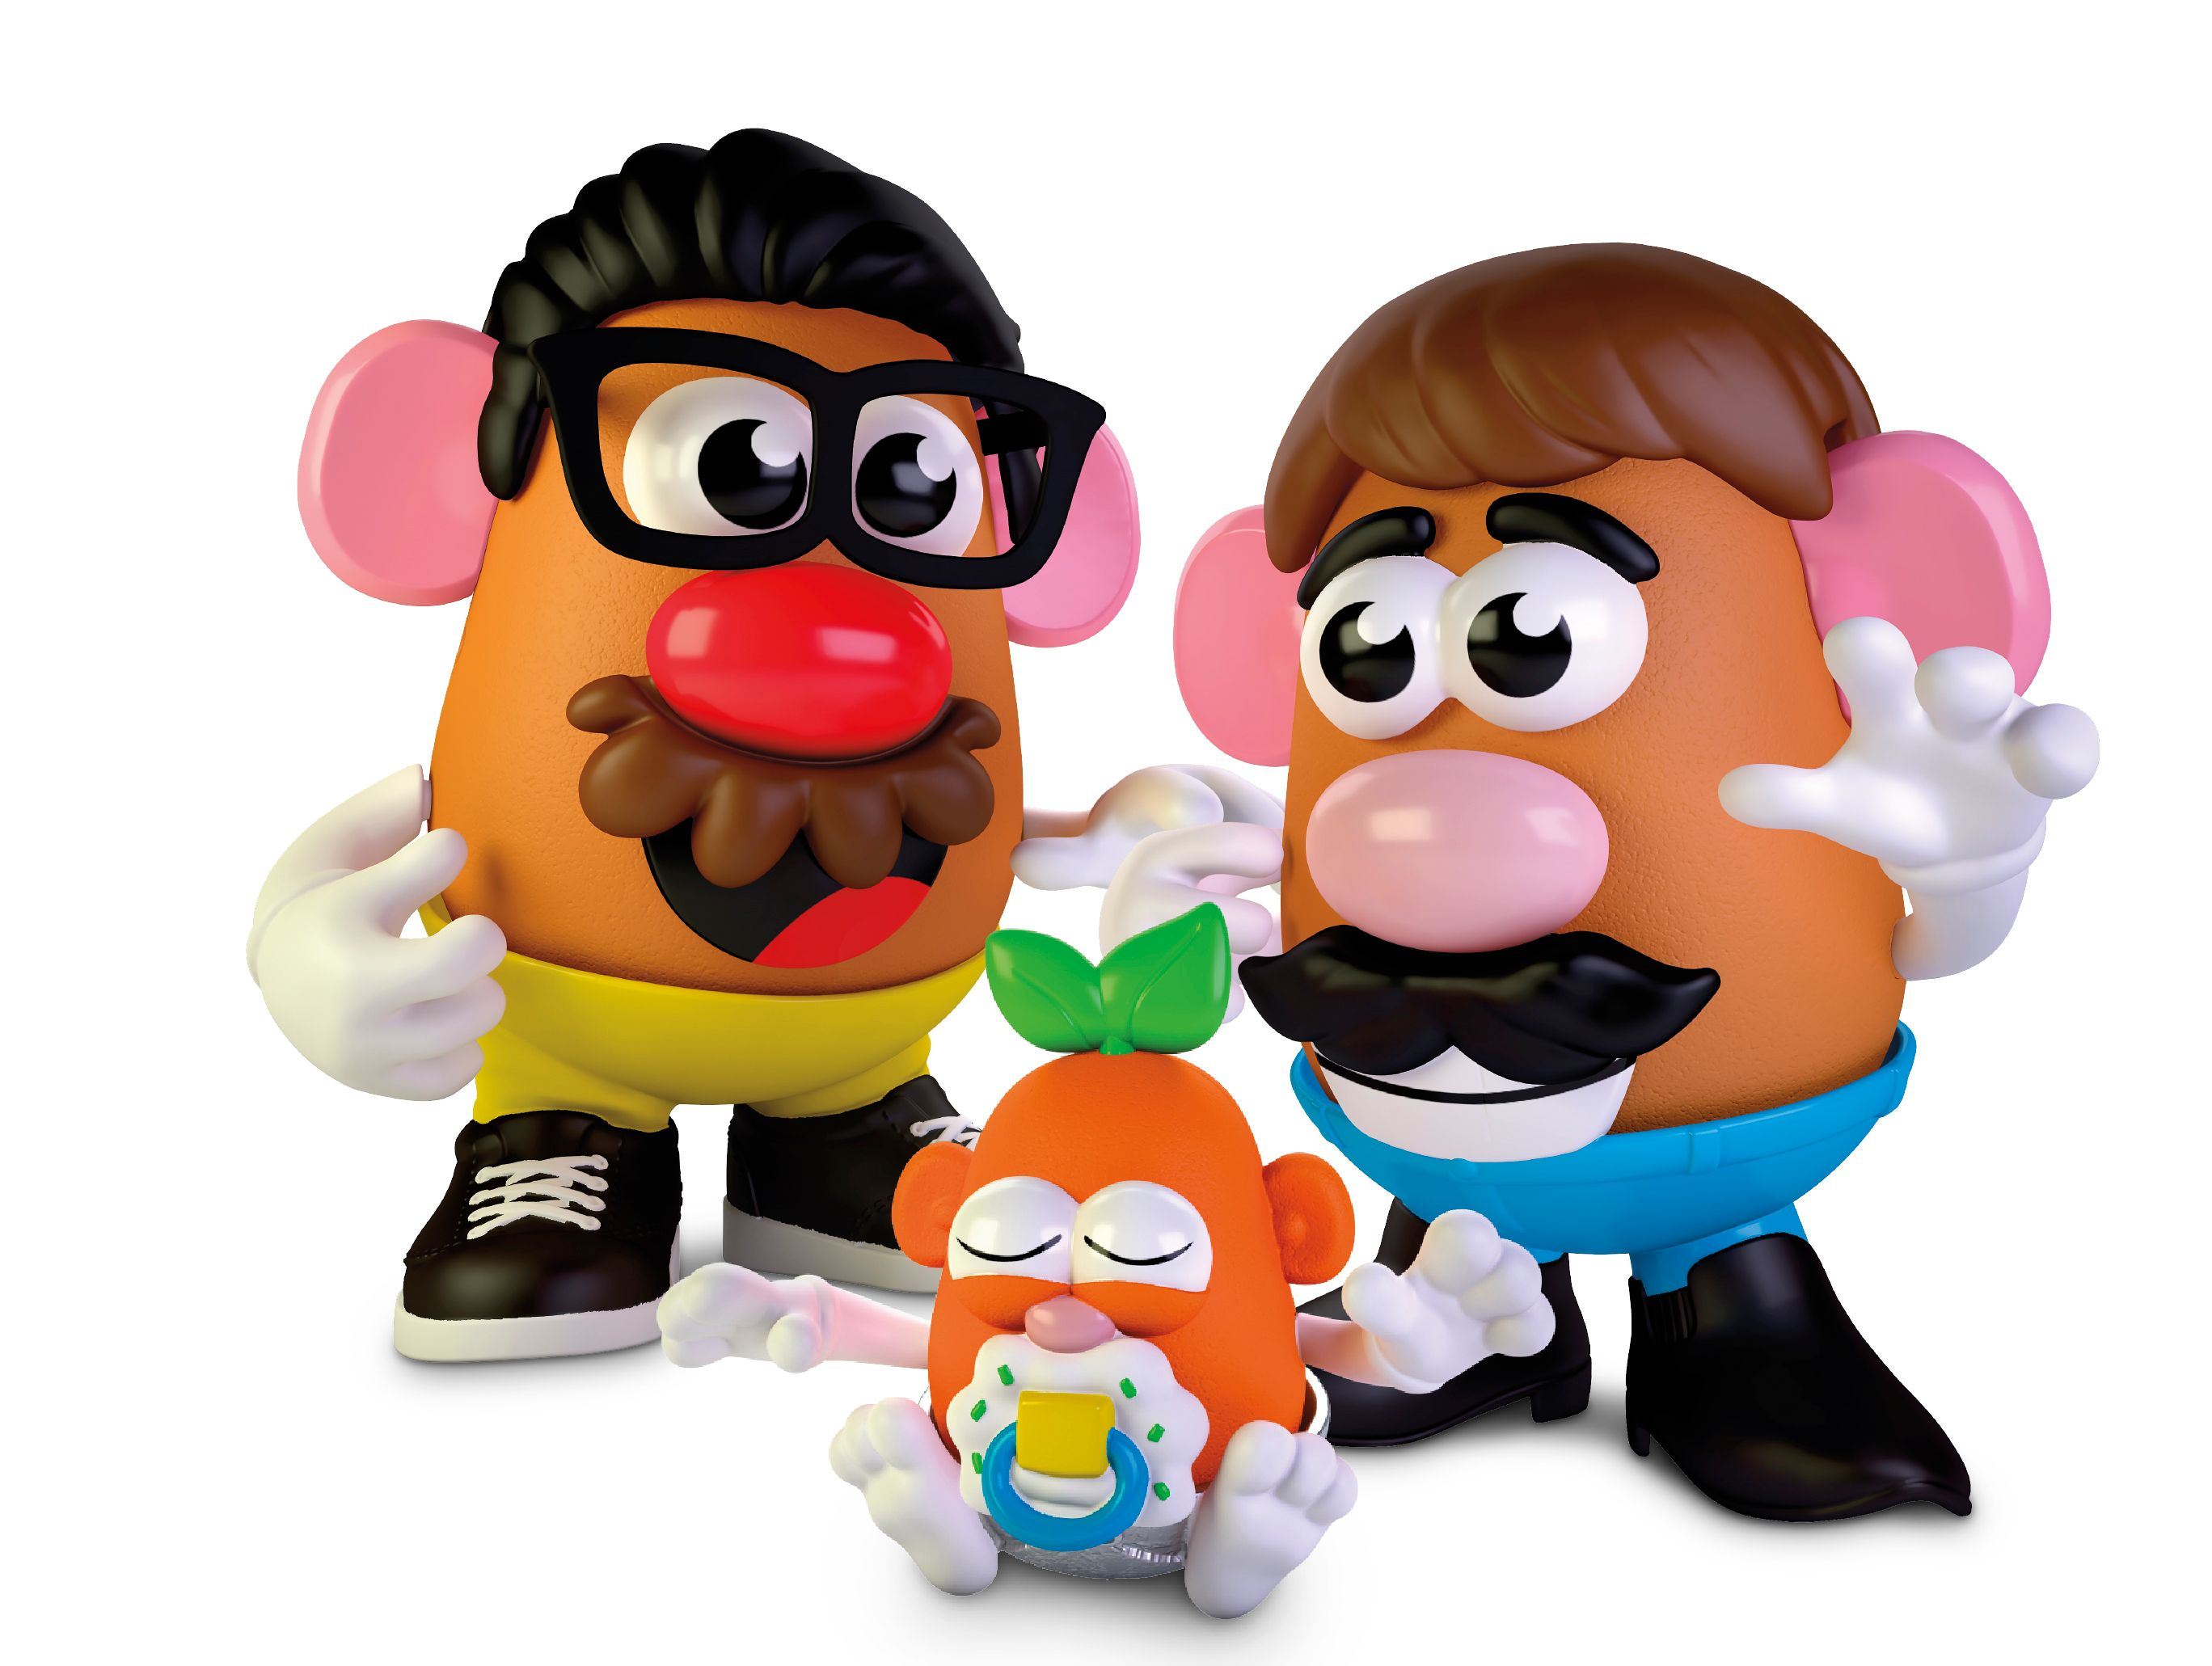 Mr. Potato Head Is Going Gender Neutral